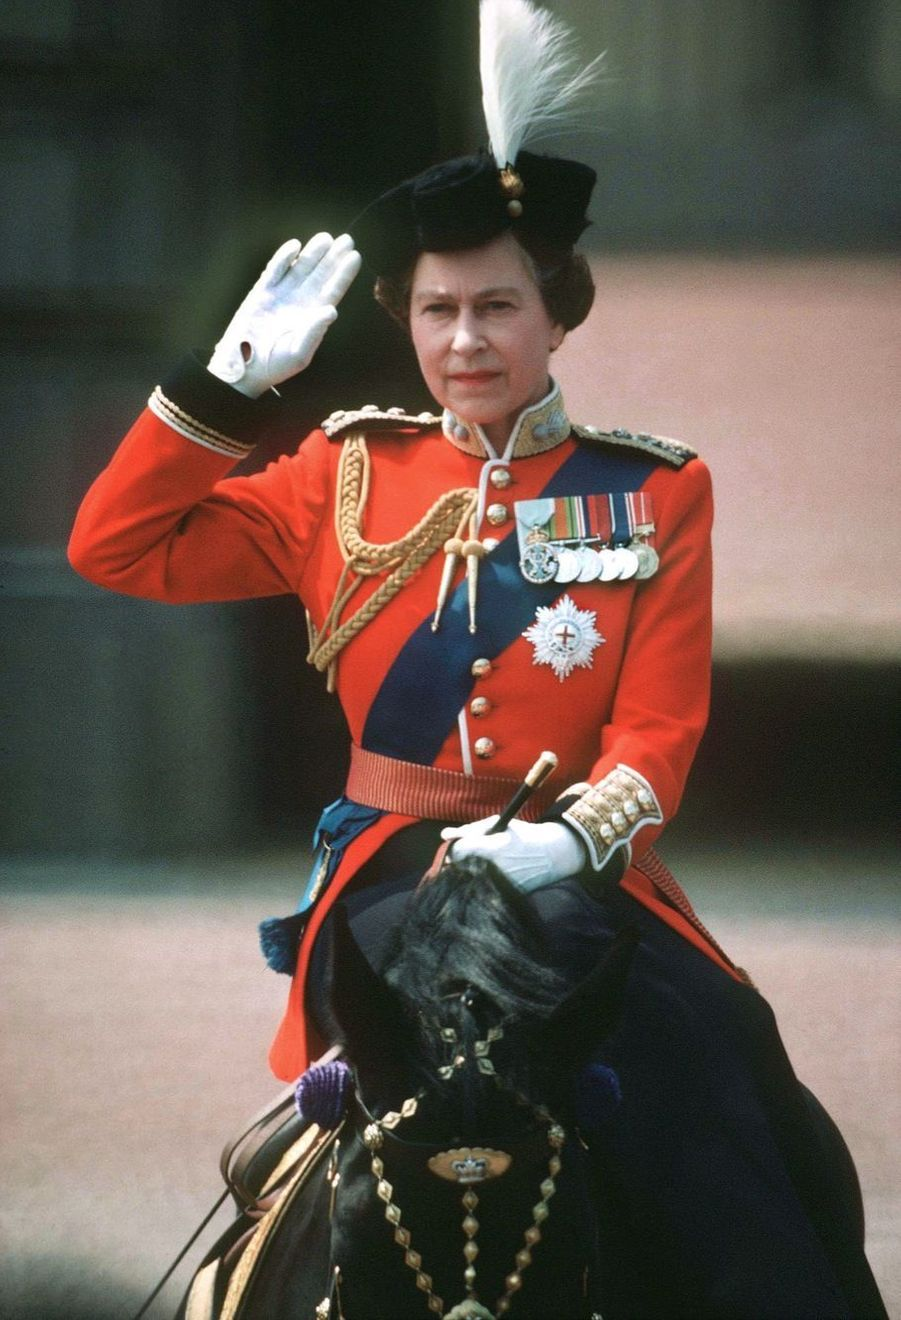 La reine Elizabeth II à cheval devant Buckingham lors du Trooping the Colour (juin 1983)